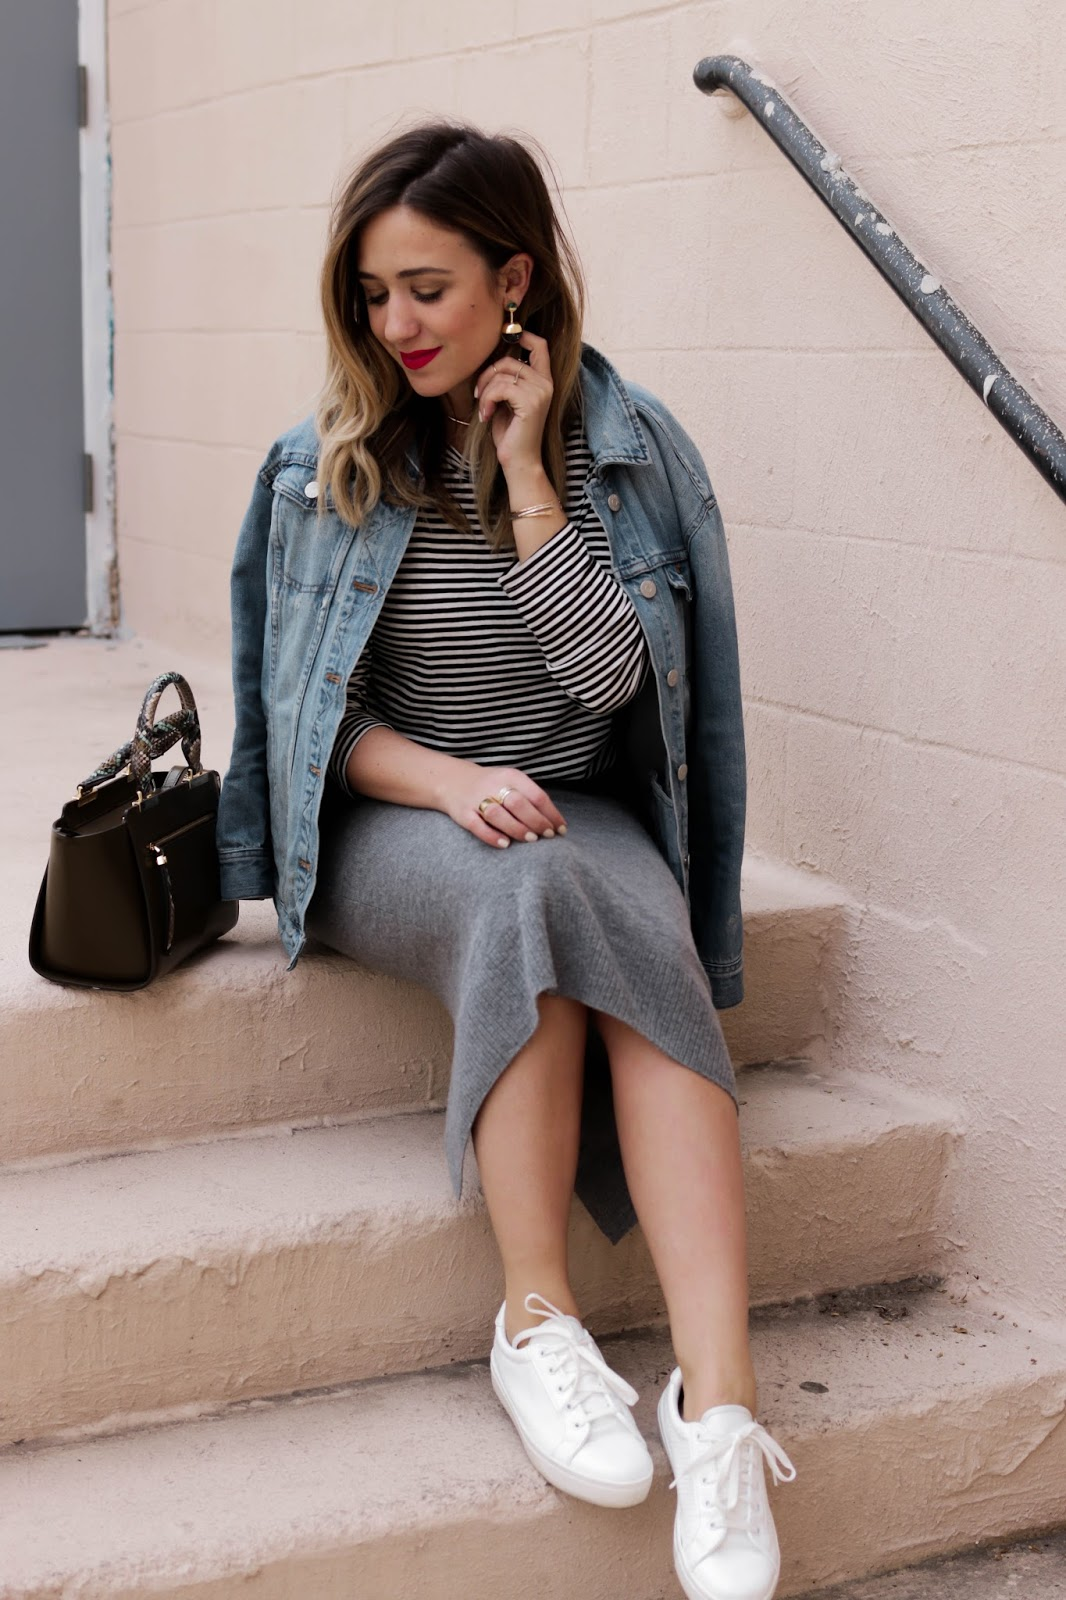 red lip, red lipstick, perfect red lipstick, revlon, dc, style, blog, blogger, outfit, inspiration, blogs, striped shirt, who what wear, target, sandro, topshop, henri bendel bag